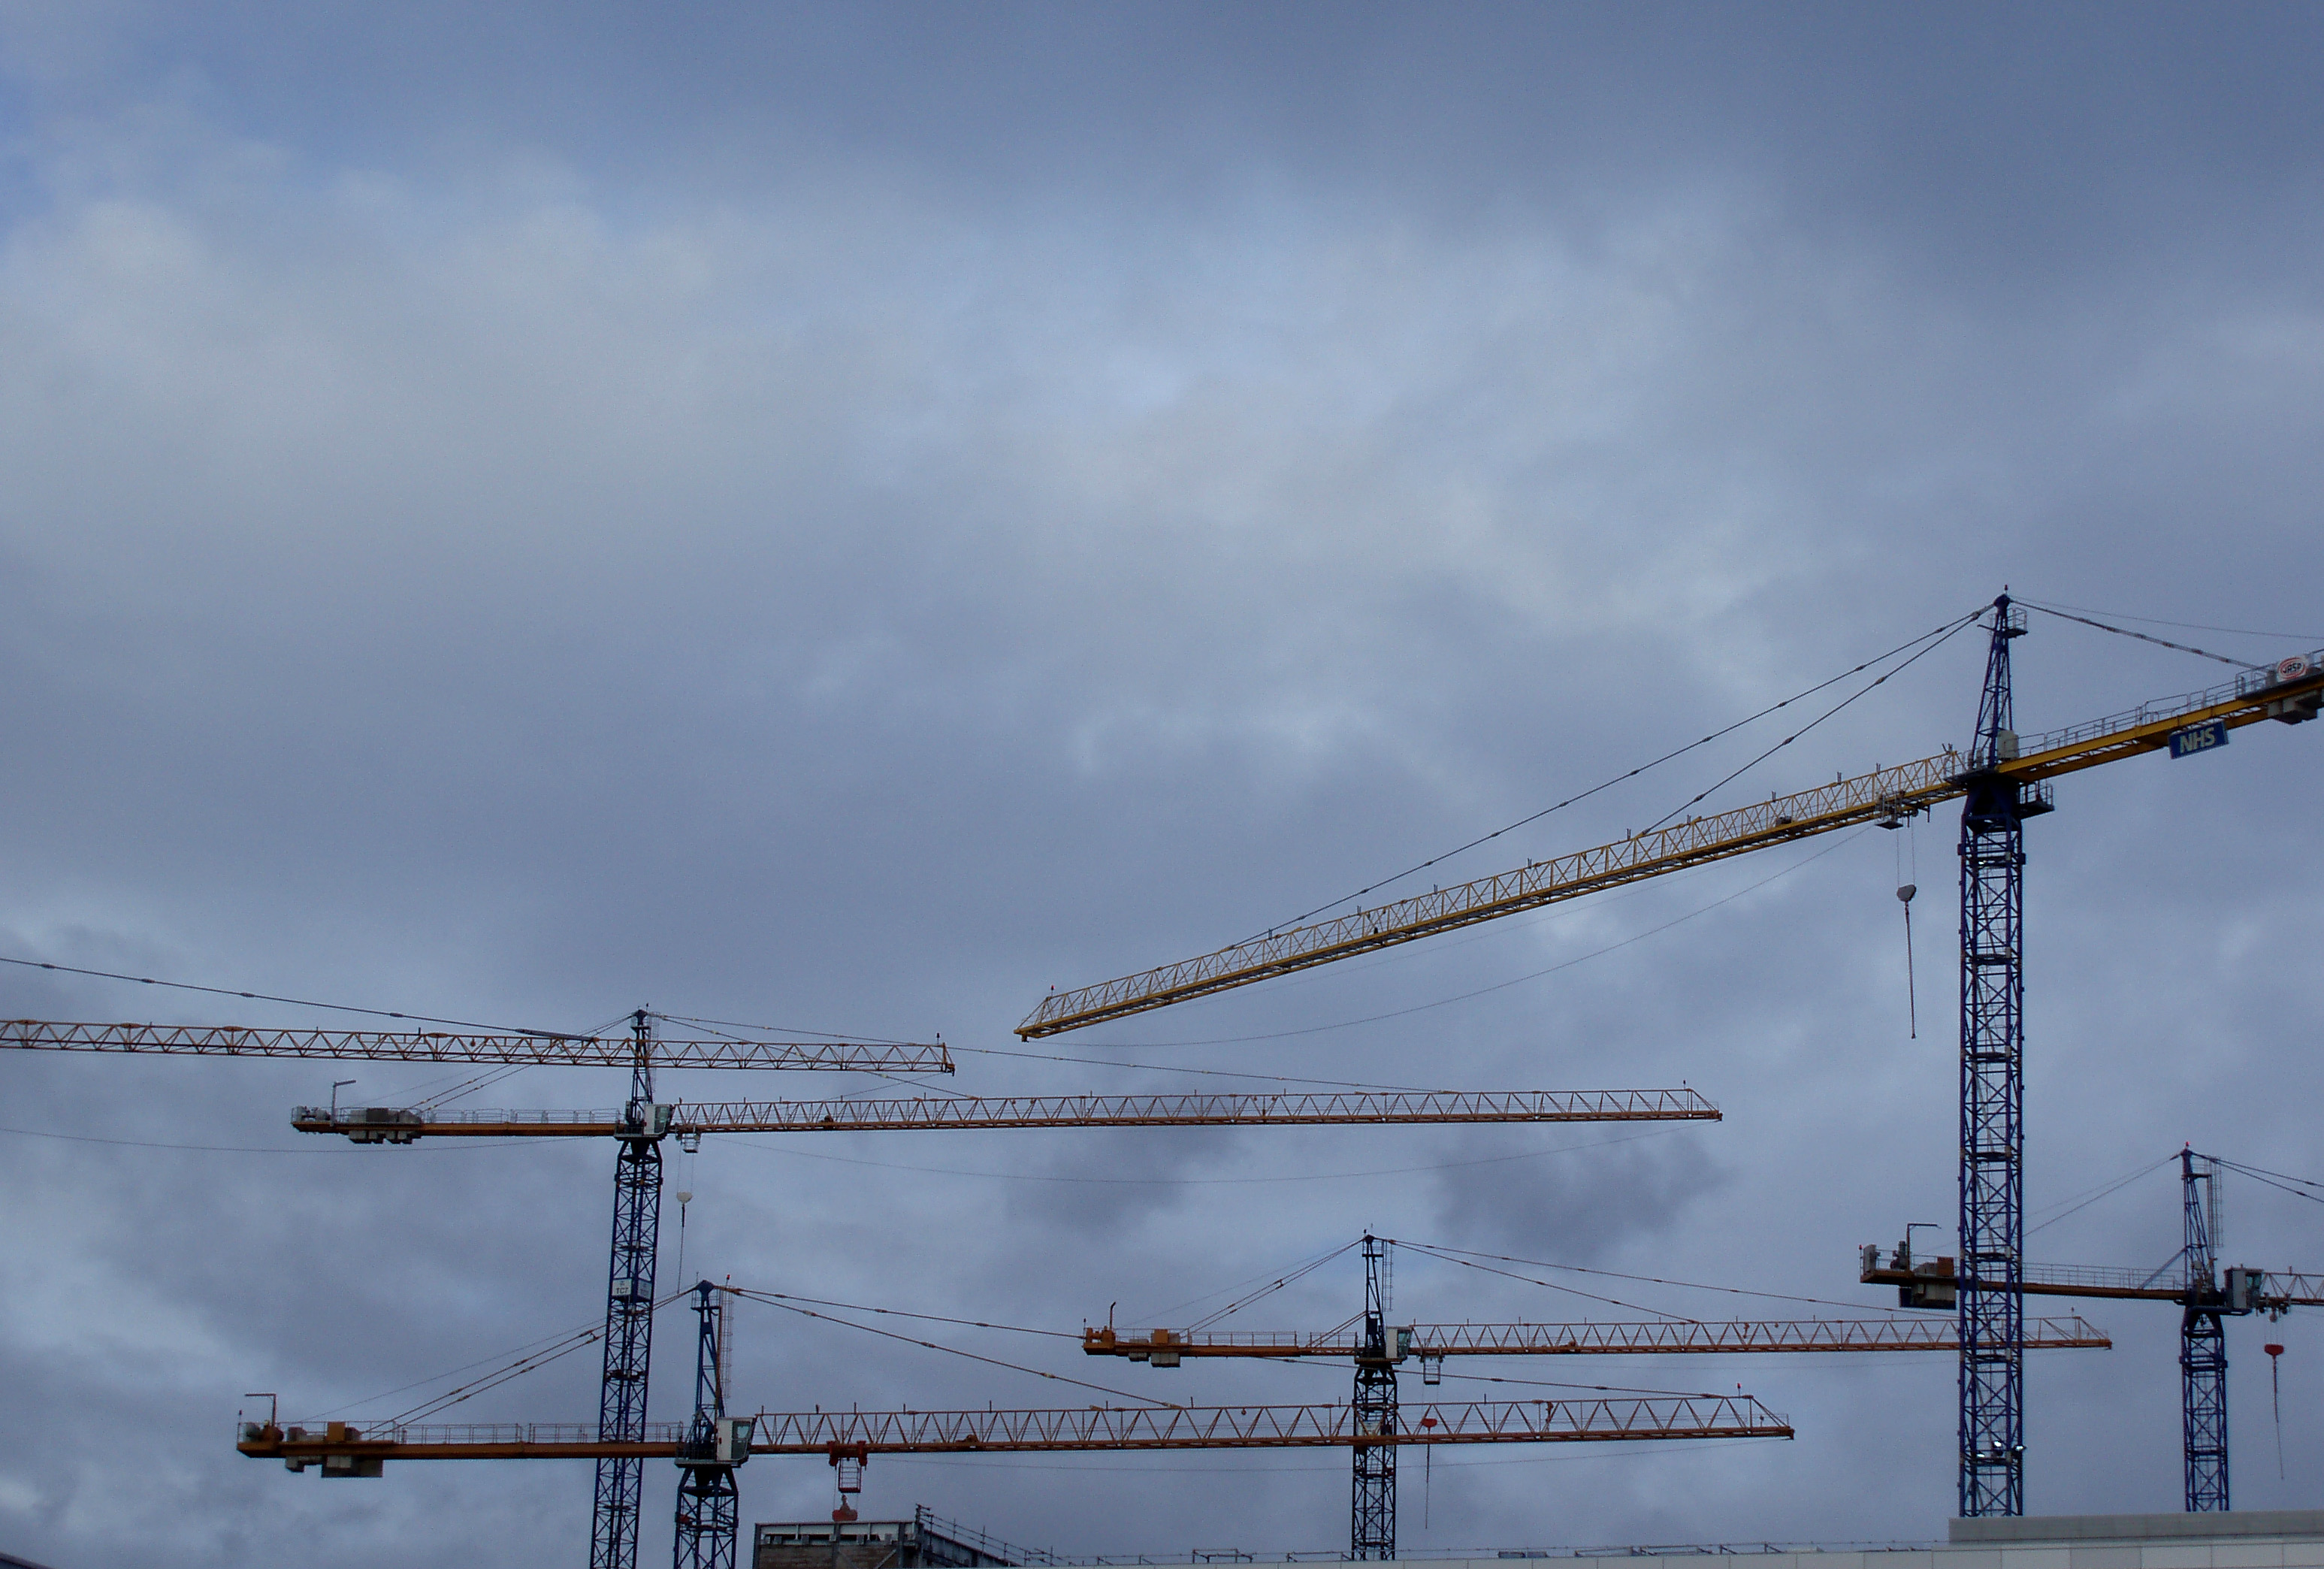 large construction site on a stormy day